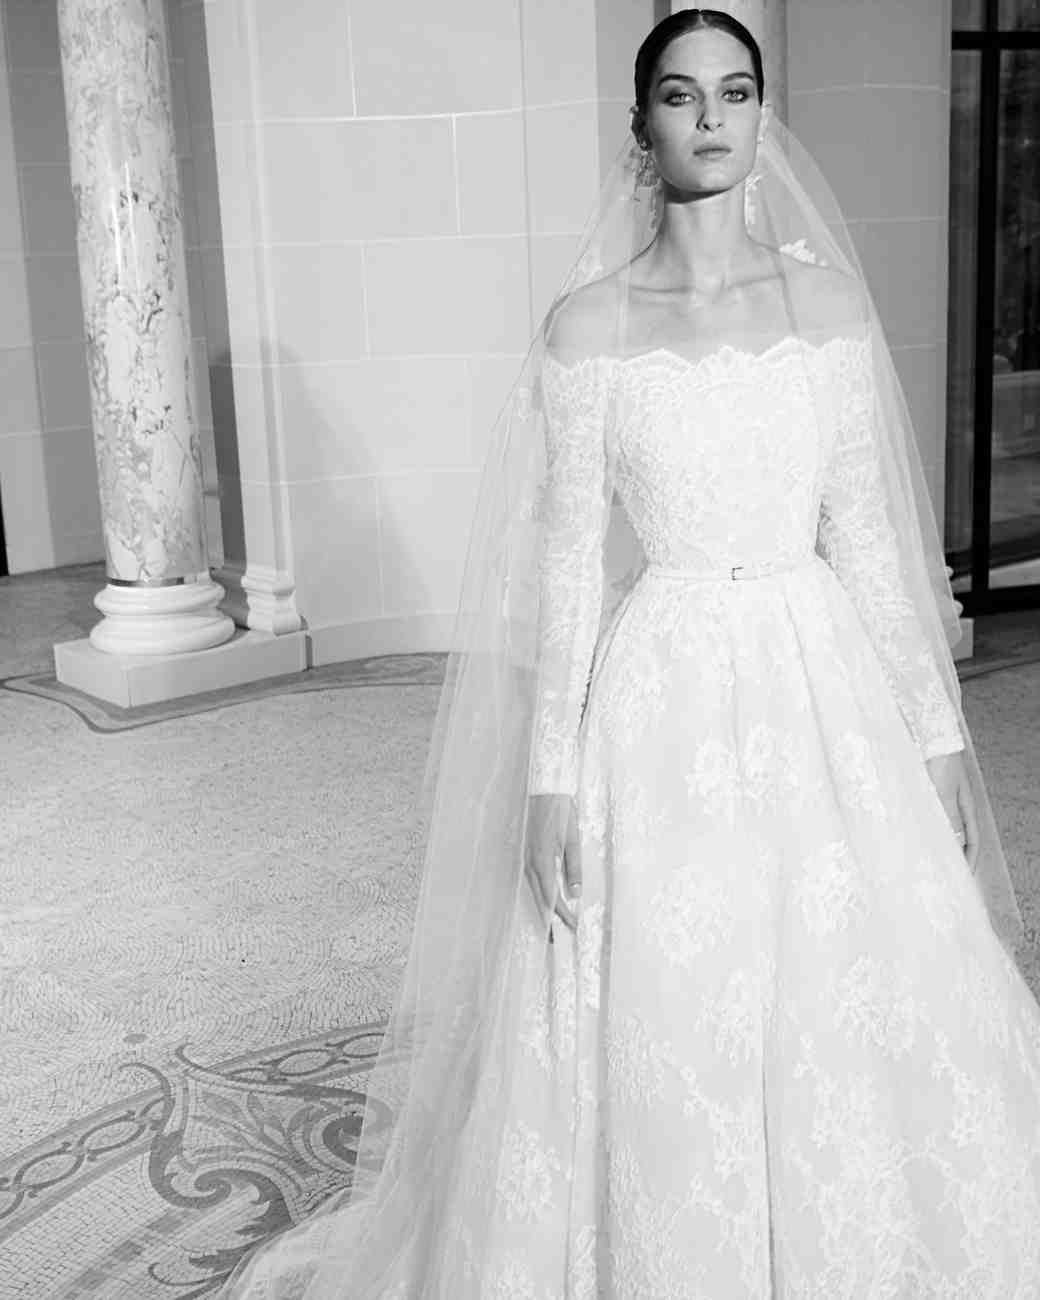 Long-Sleeved Wedding Dresses We Love | Martha Stewart Weddings